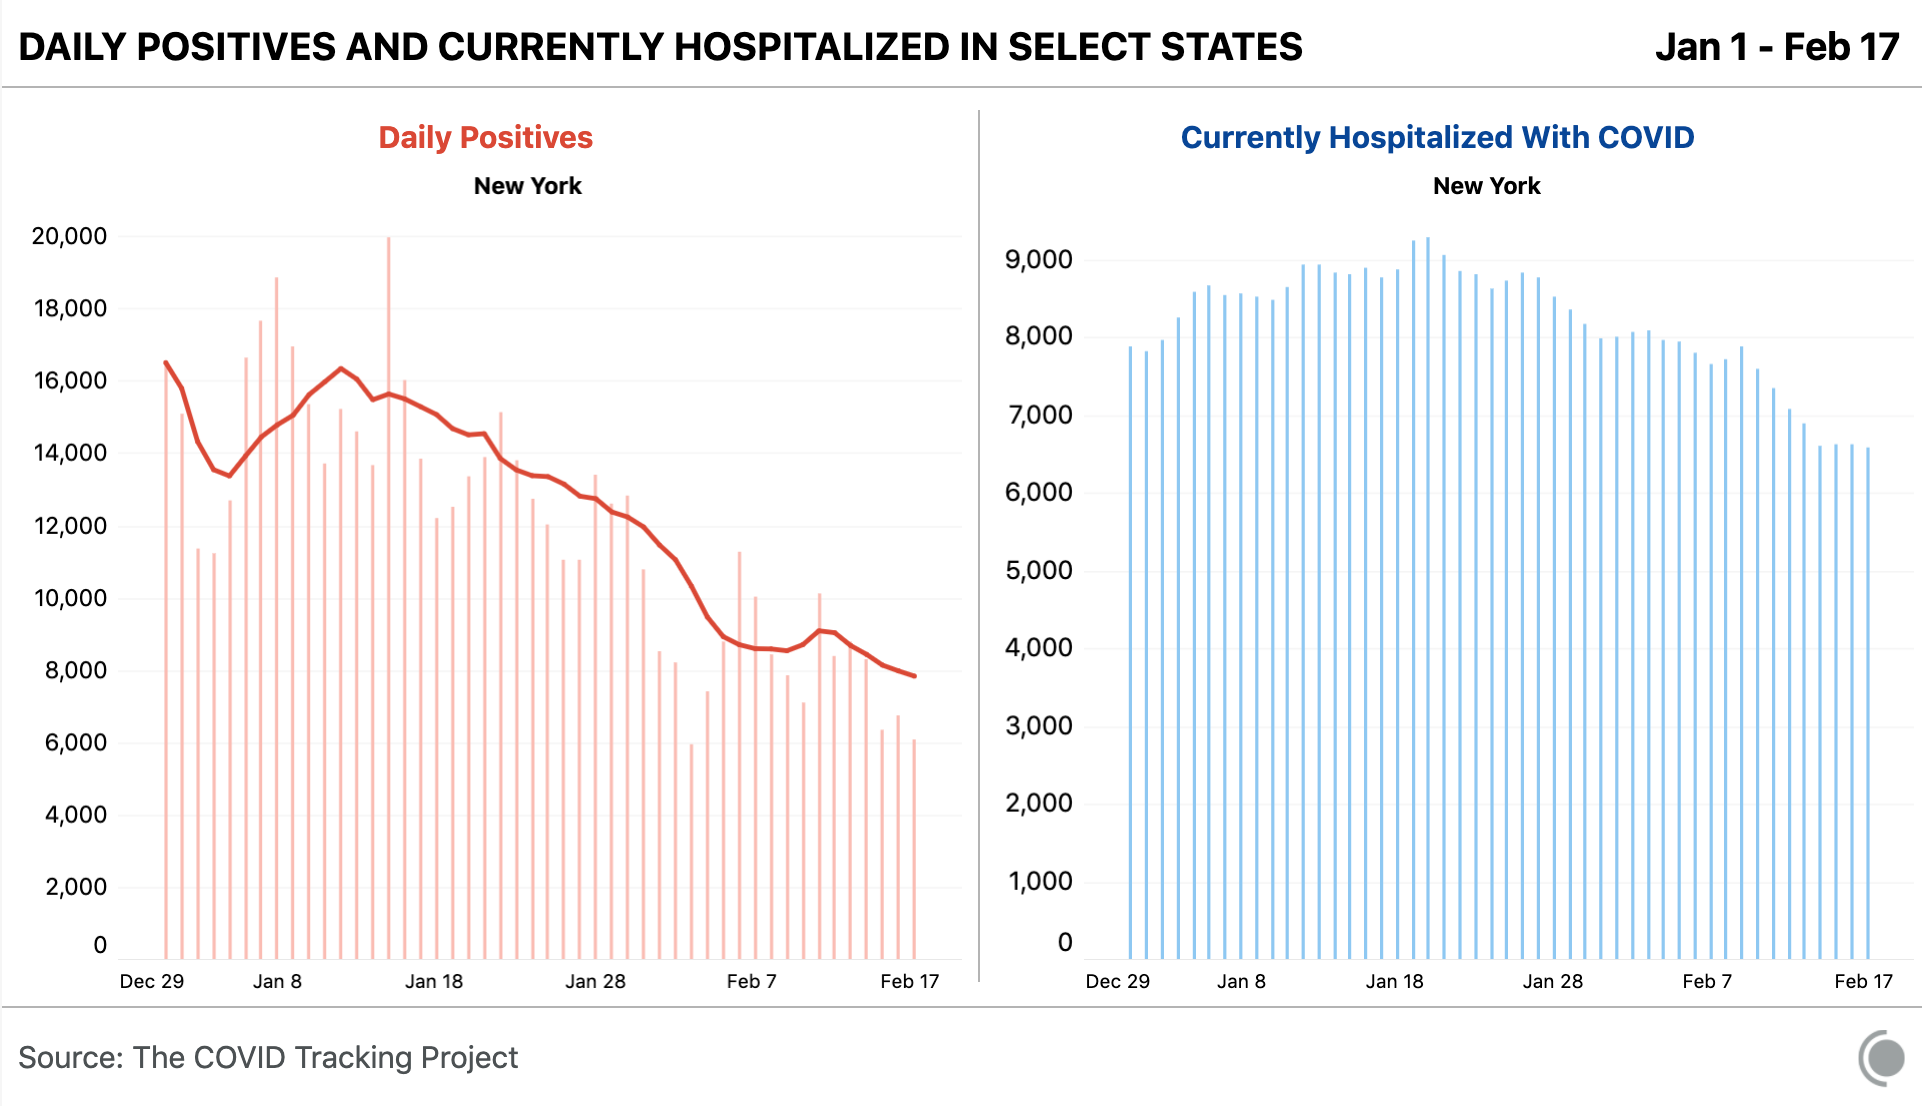 Two bar charts showing daily positives and currently hospitalized in New York. A wobble in reported positives is visible around a week after the Feb 4 storm that disrupted reporting. No such wobble is visible in the currently hospitalized numbers.